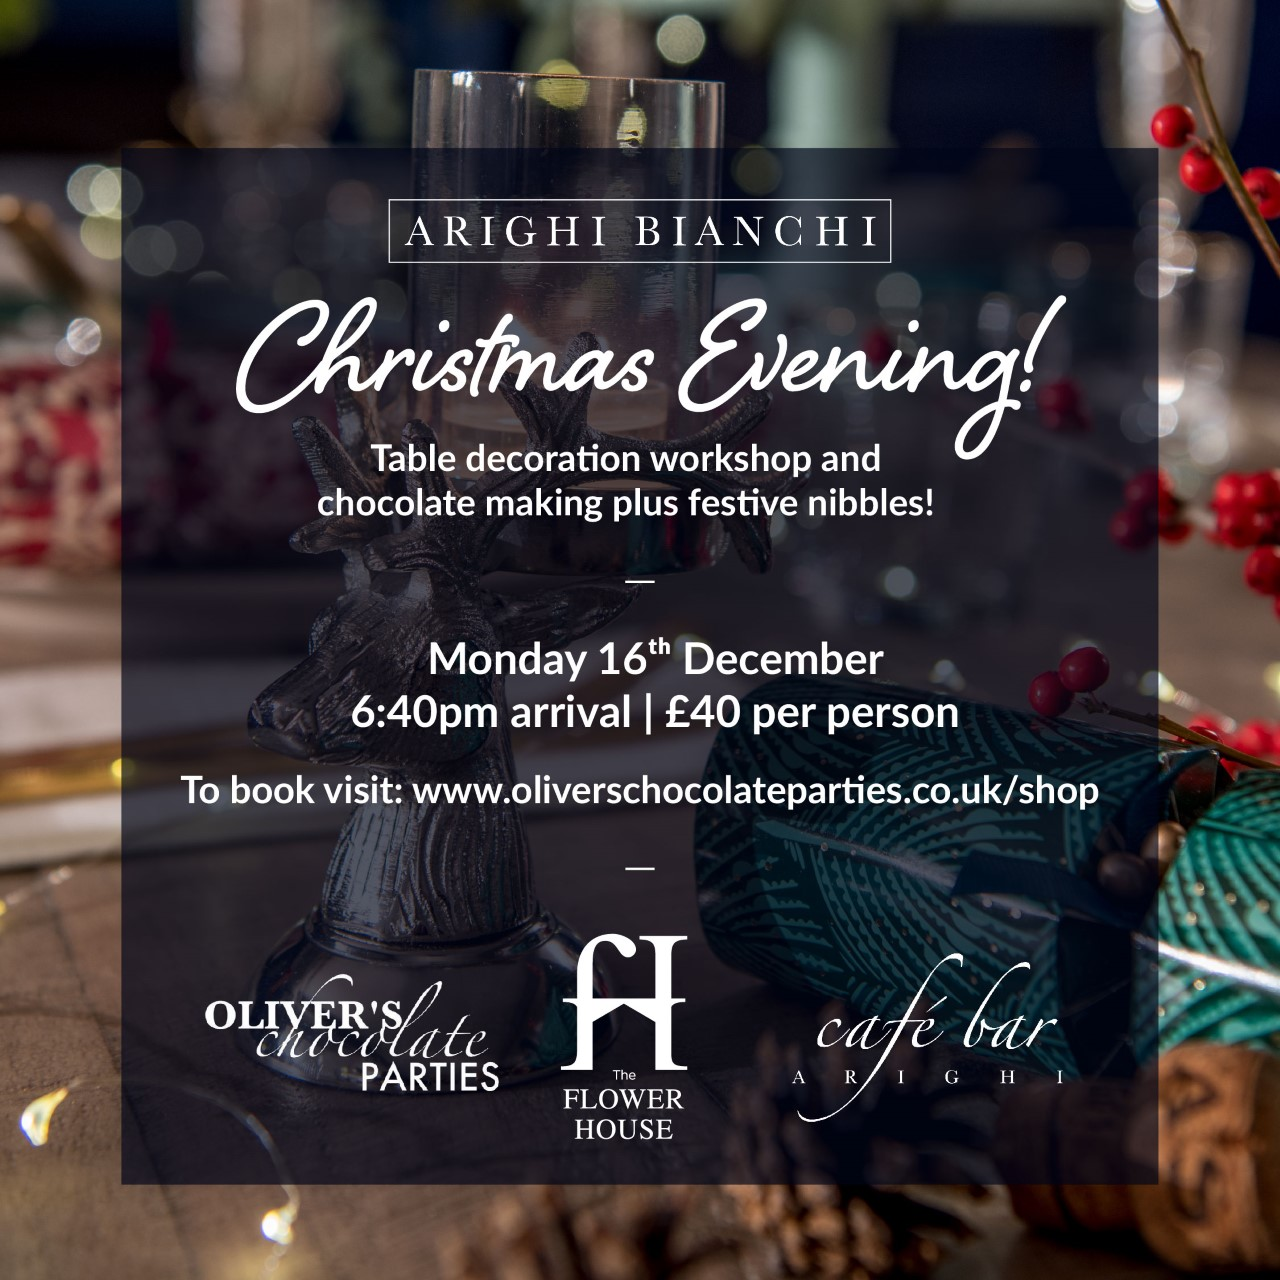 Arighi Bianchi Christmas Evening- Monday 16th December